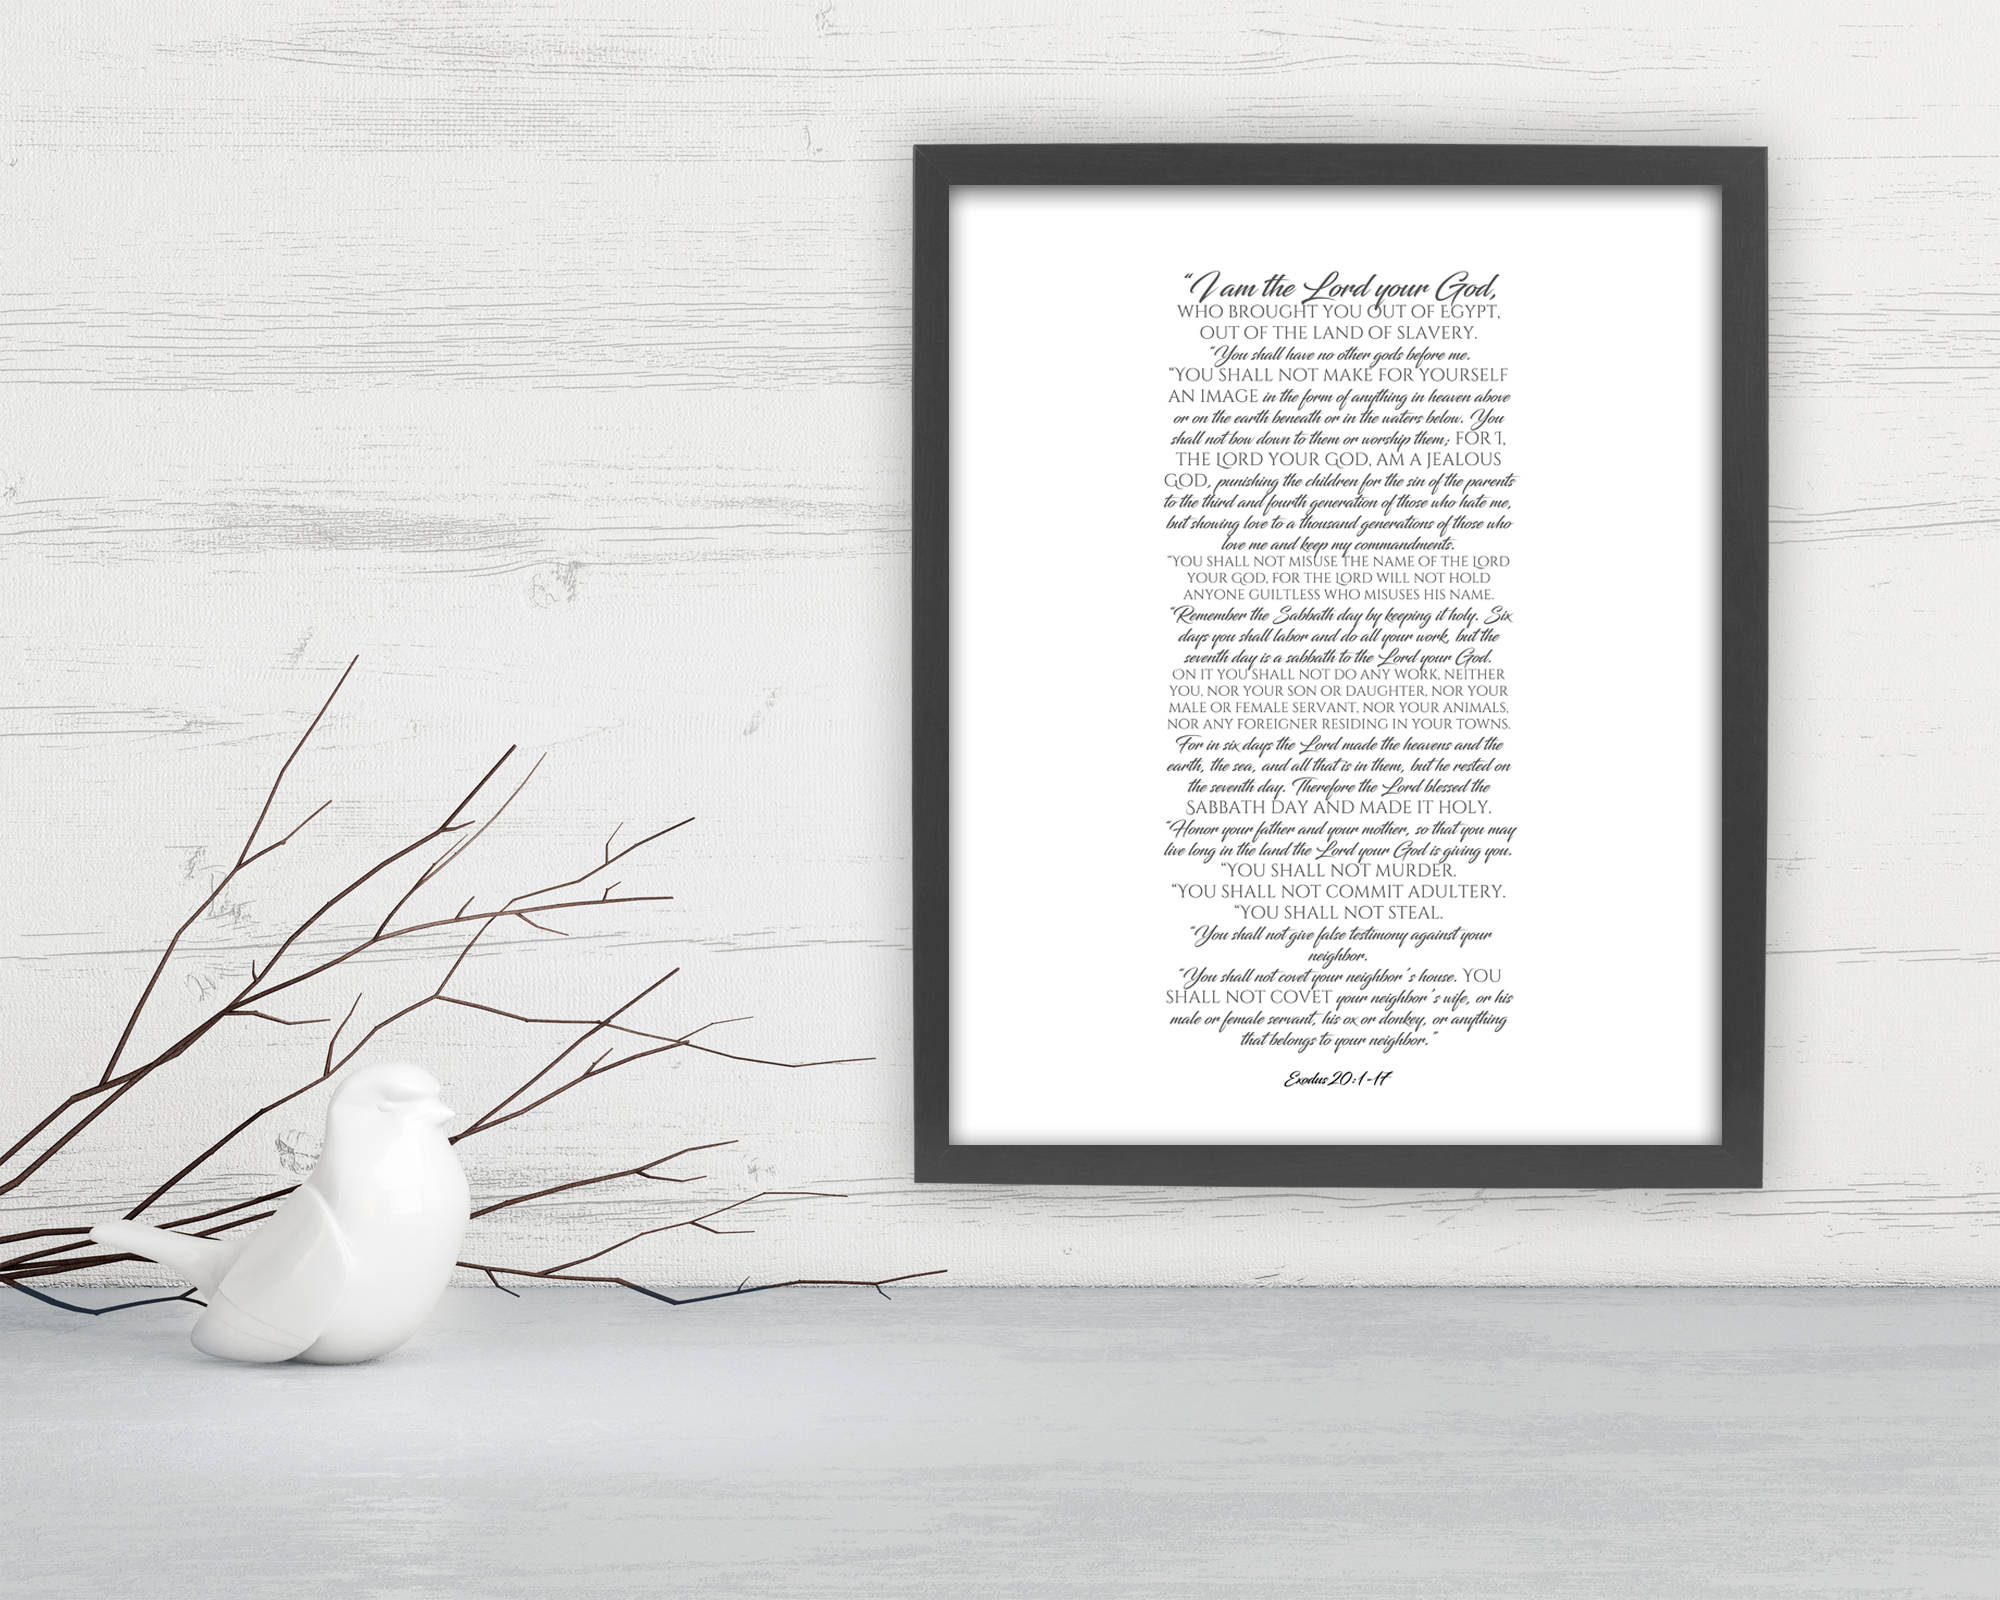 10 Commandments, Framed Scripture Print, Bible Verse Print, The ten commandments, gift, christian decor, Exodus 20, print, preacher gift